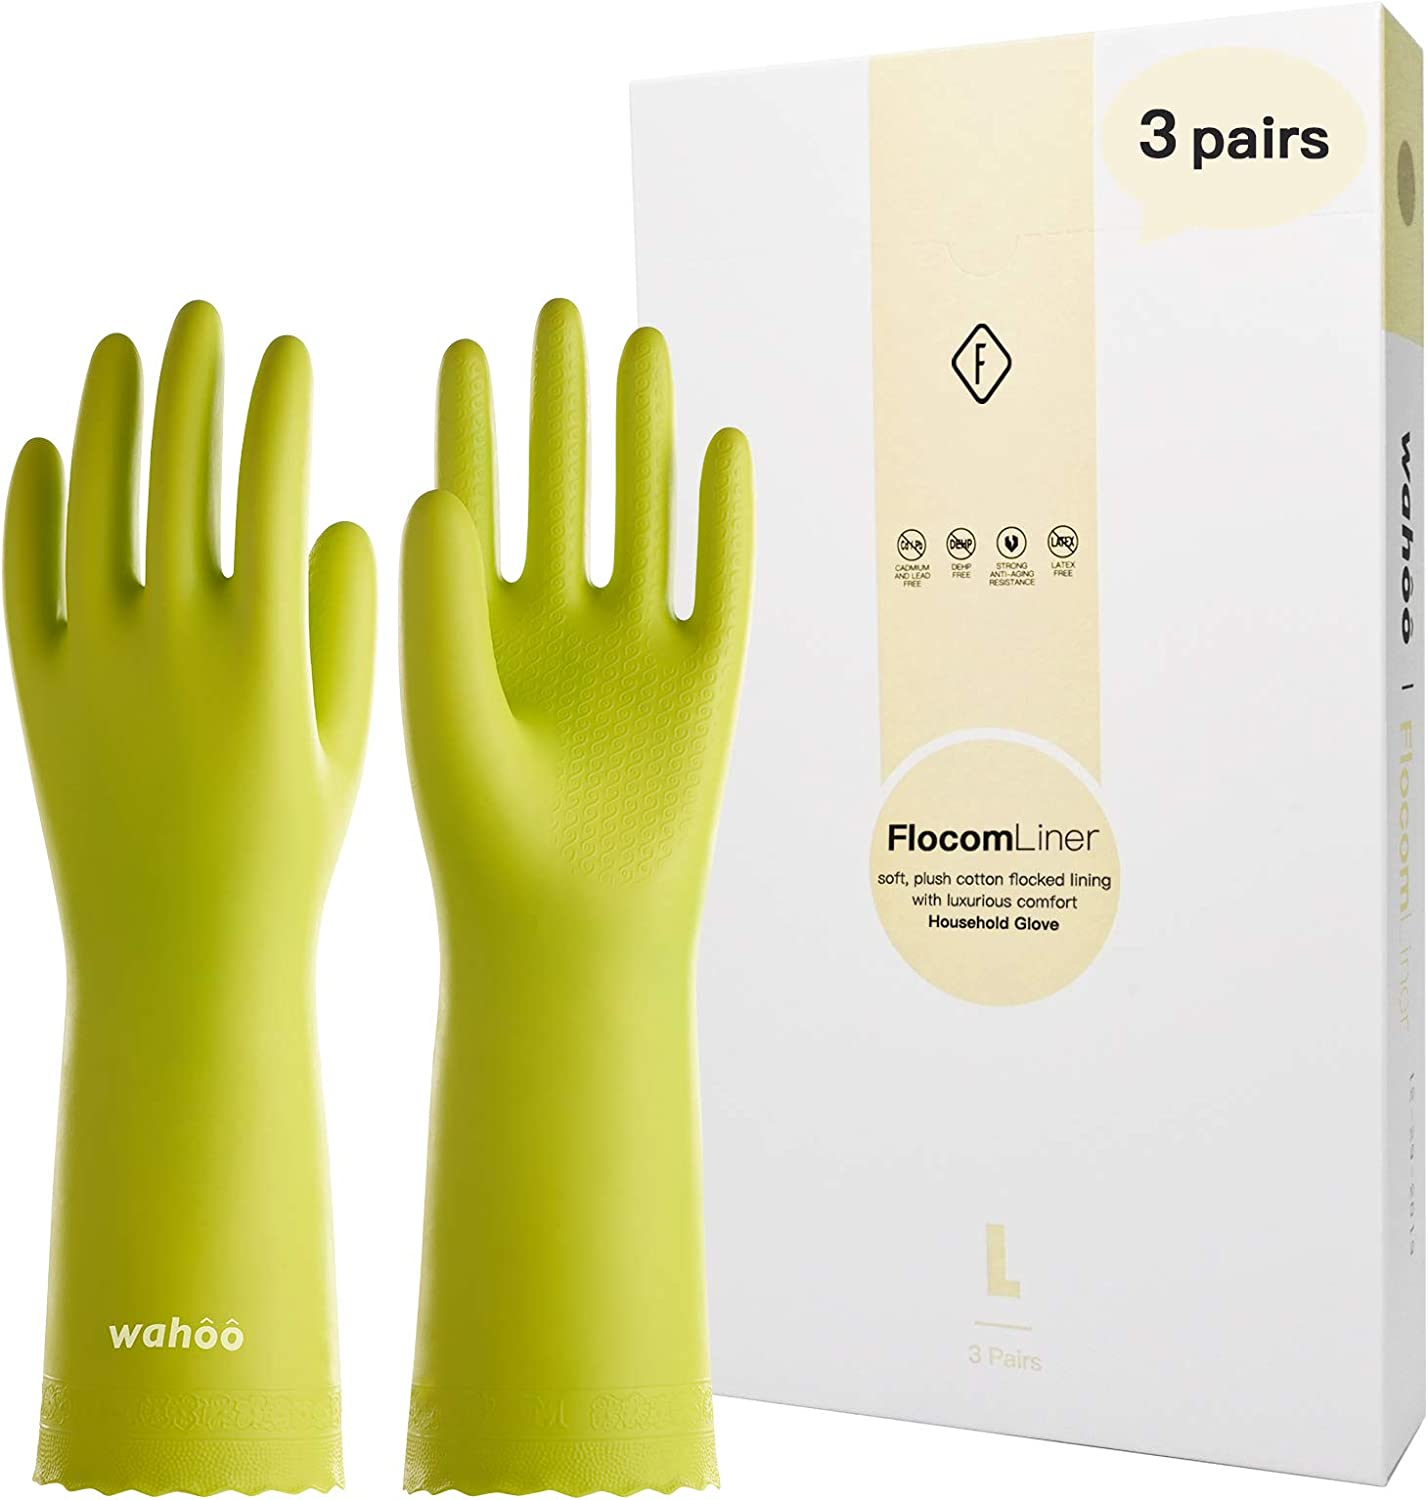 Raleigh Mall LANON Wahoo 3 Pairs PVC Household Reusable Cleaning Gloves Ranking TOP19 Dish